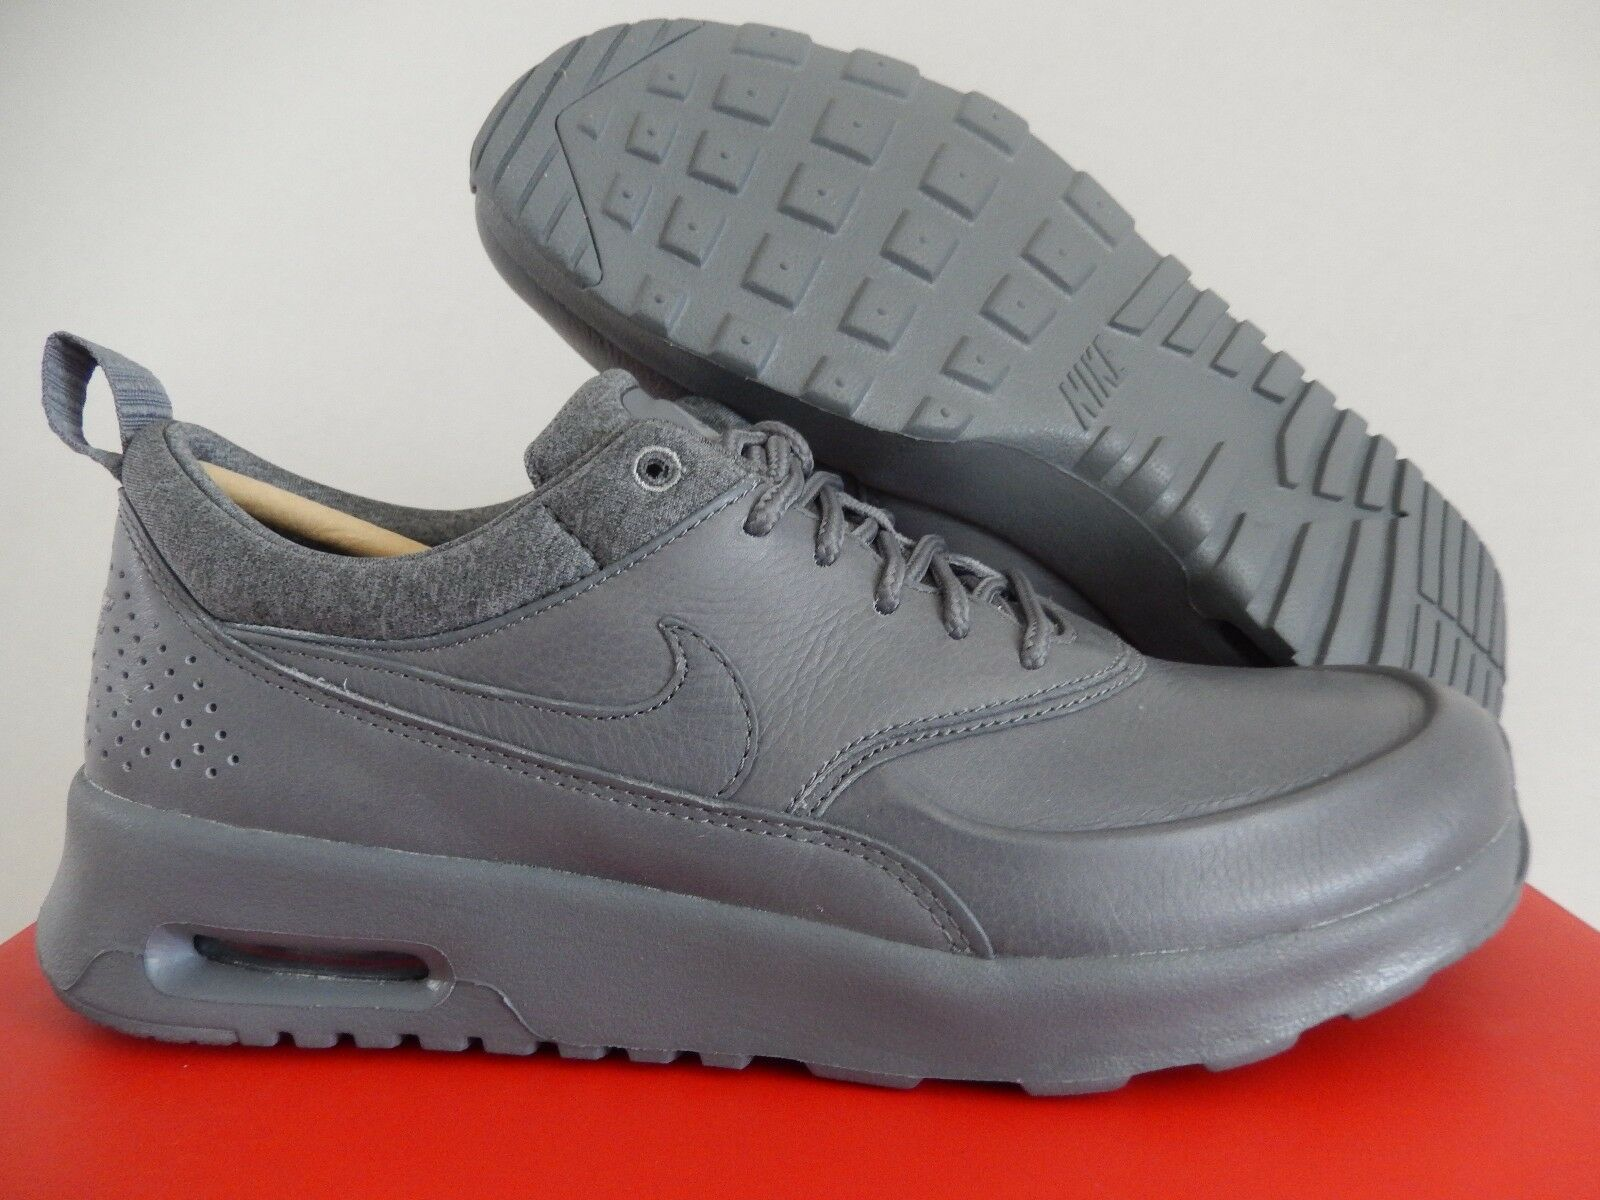 femmes  NIKE AIR MAX THEA PINNACLE COOL gris-gris-MATTE SZ 8 [839611-003]